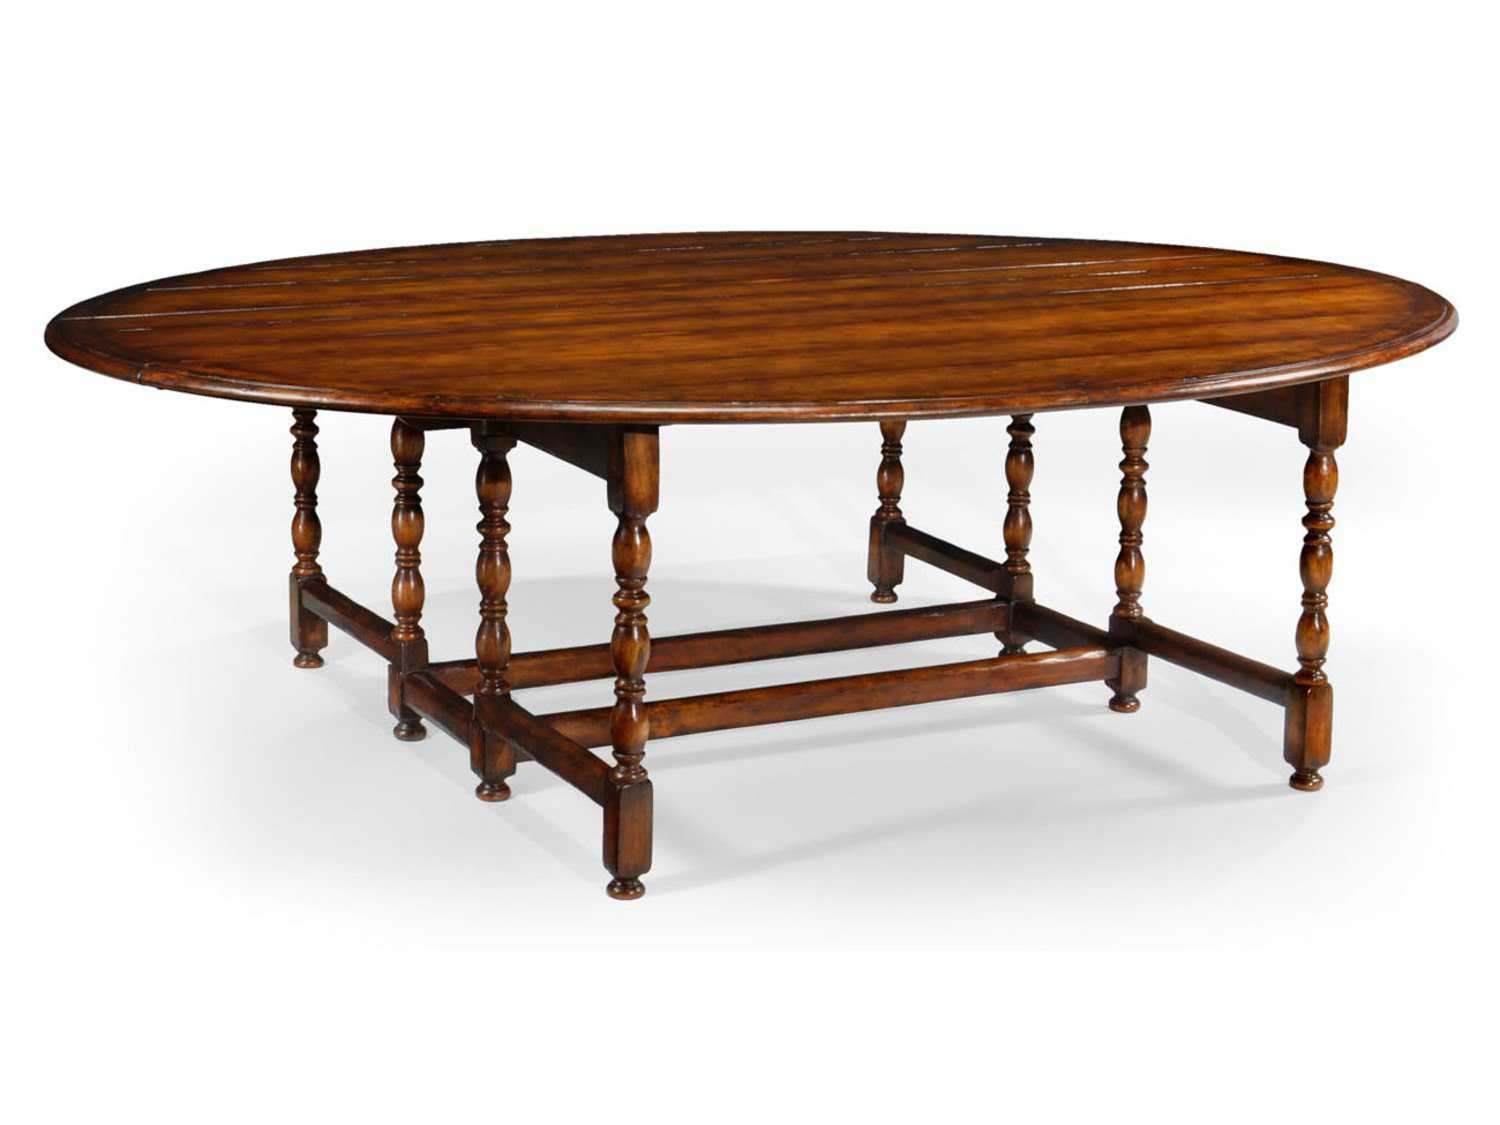 Jonathan Charles Country Farmhouse Medium Walnut 102 5 x 21 75 Oval Dining Table